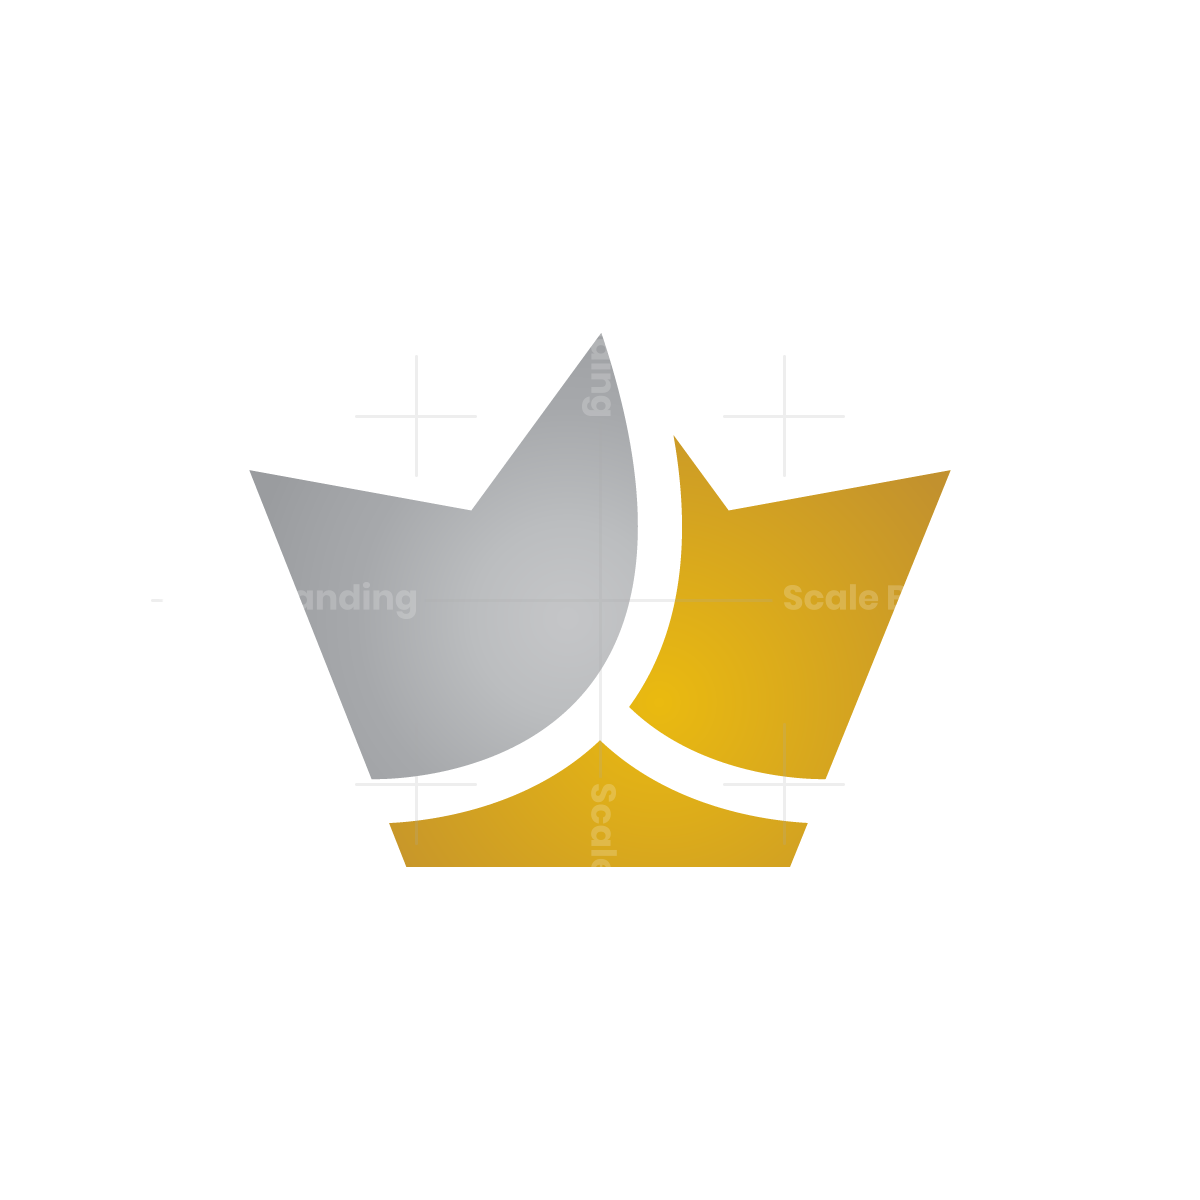 Gold And Silver Crown Logo